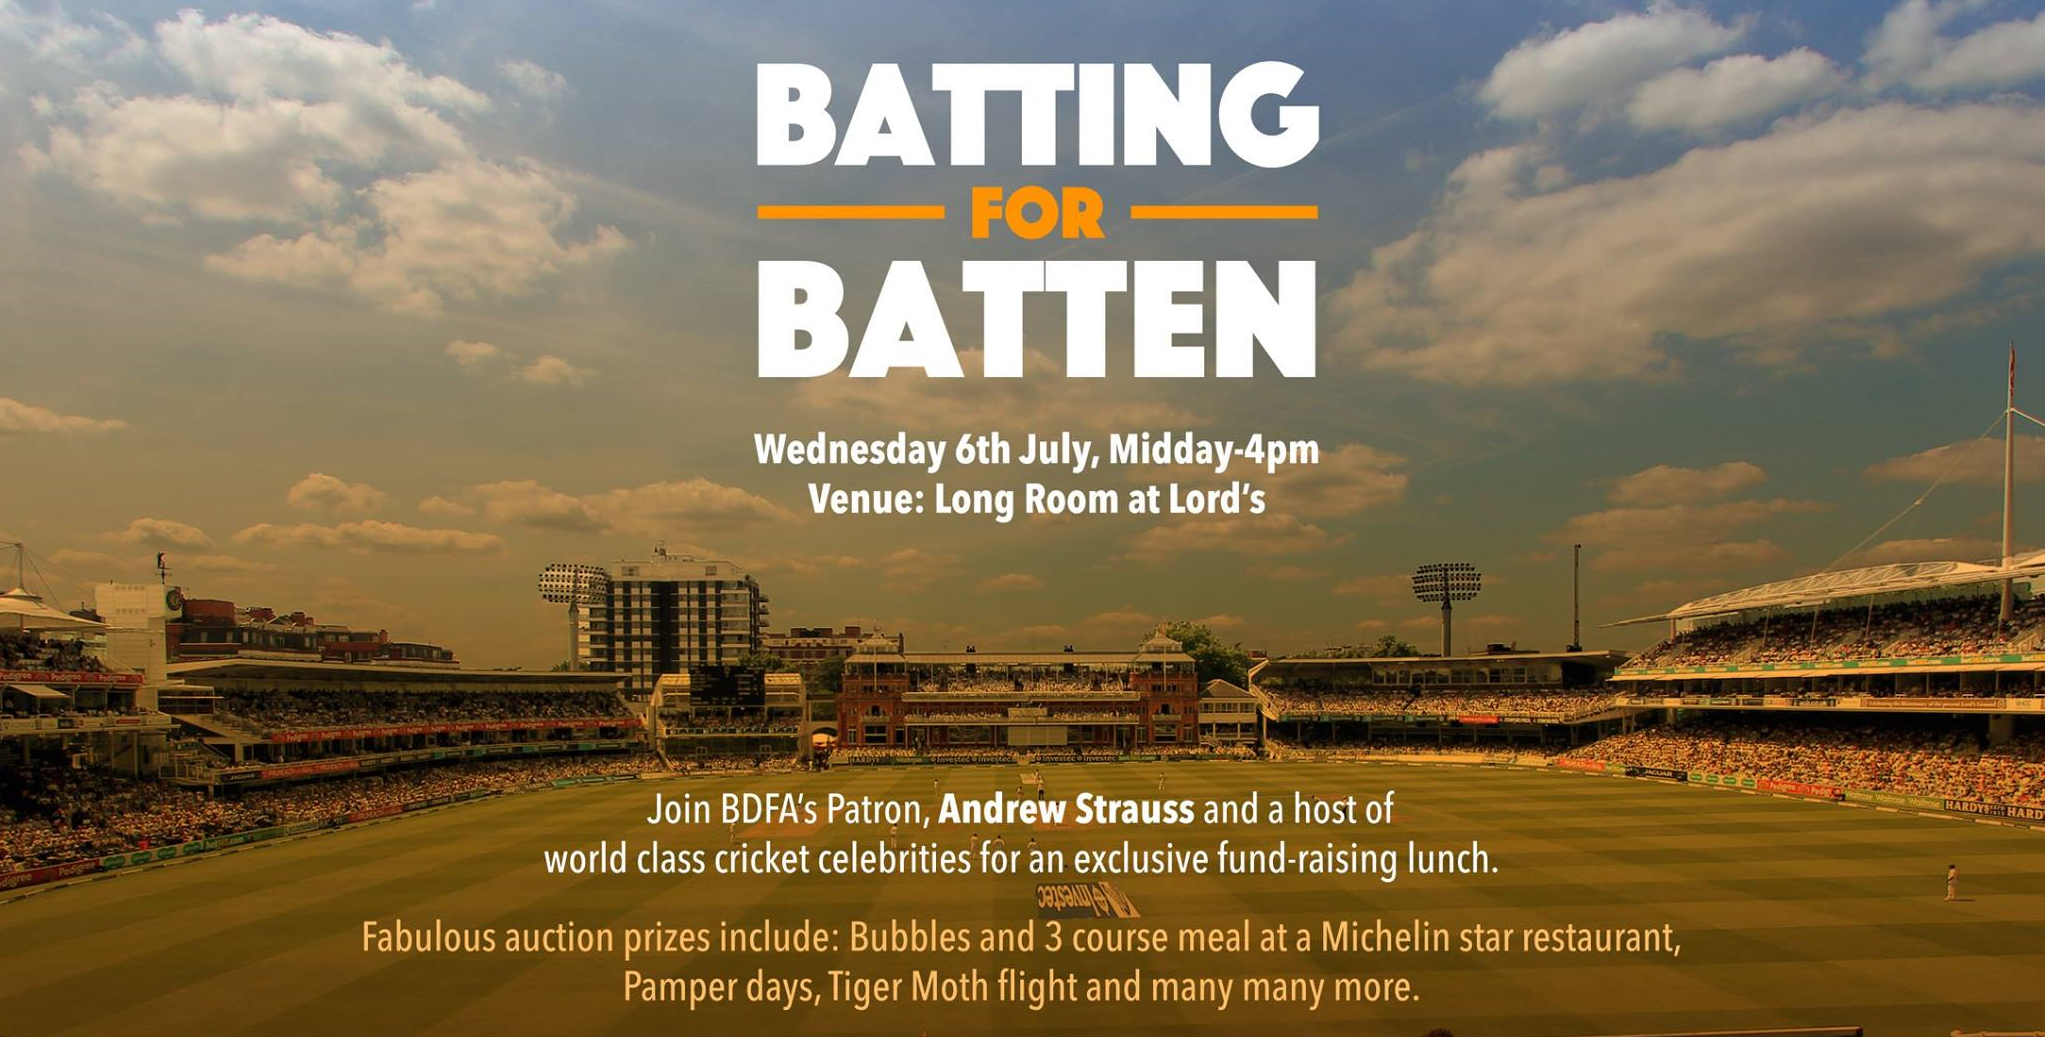 Batting for Batten Lunch 2016